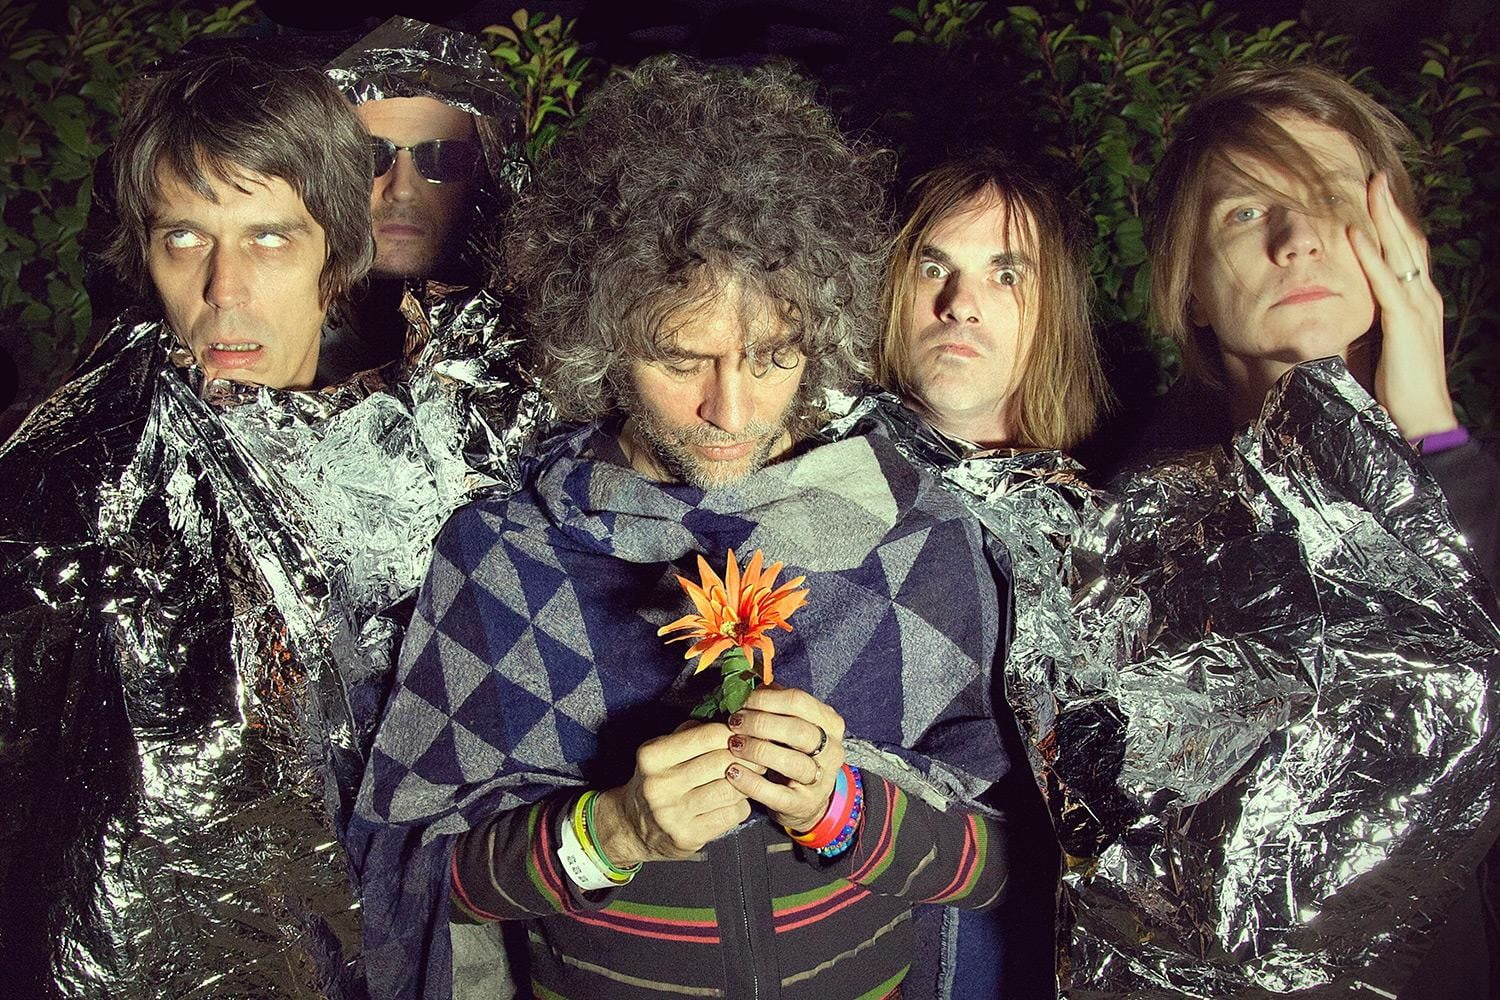 The-Flaming-Lips-with-flower-photo-by-George-Salisbury_